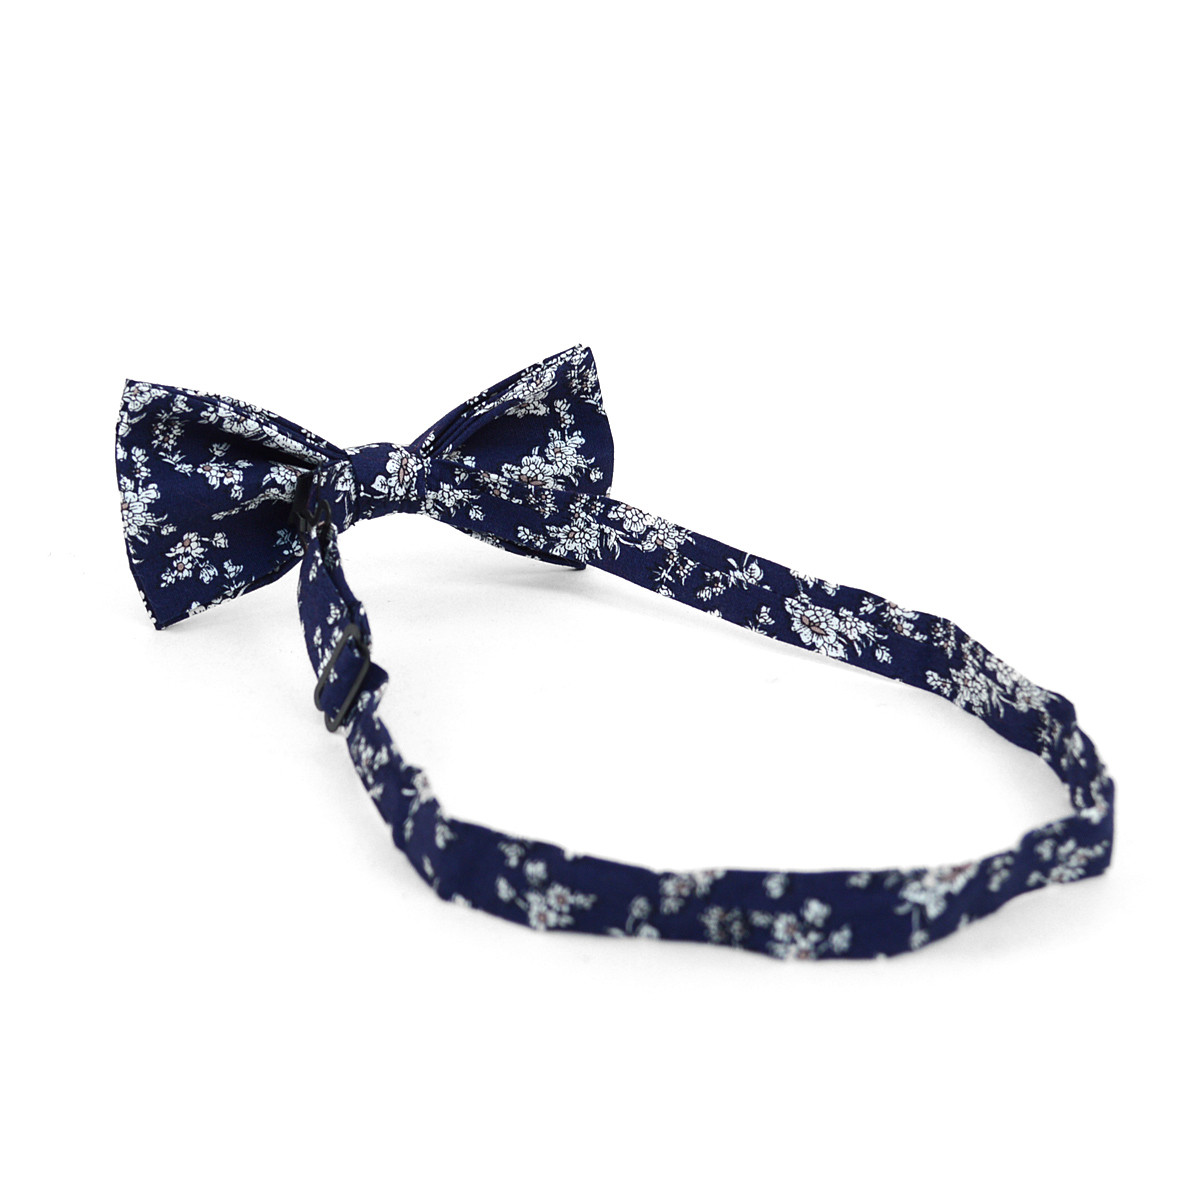 3pc Floral Wedding Cotton Banded Bow Tie - NFCB17124